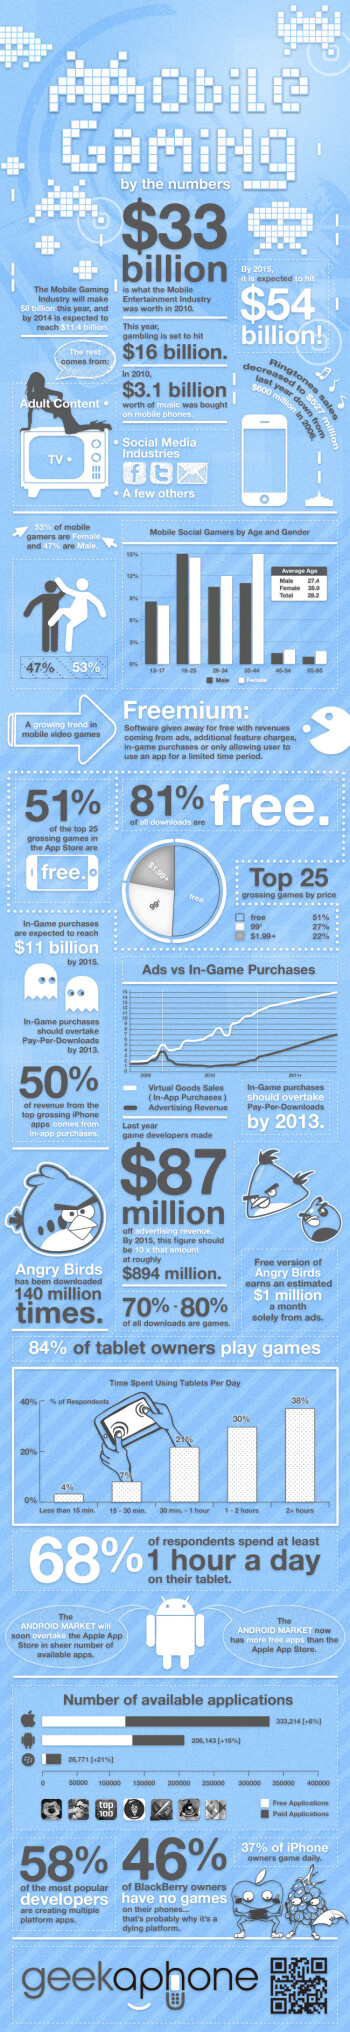 This is what the mobile video game industry looks like broken down into numbers